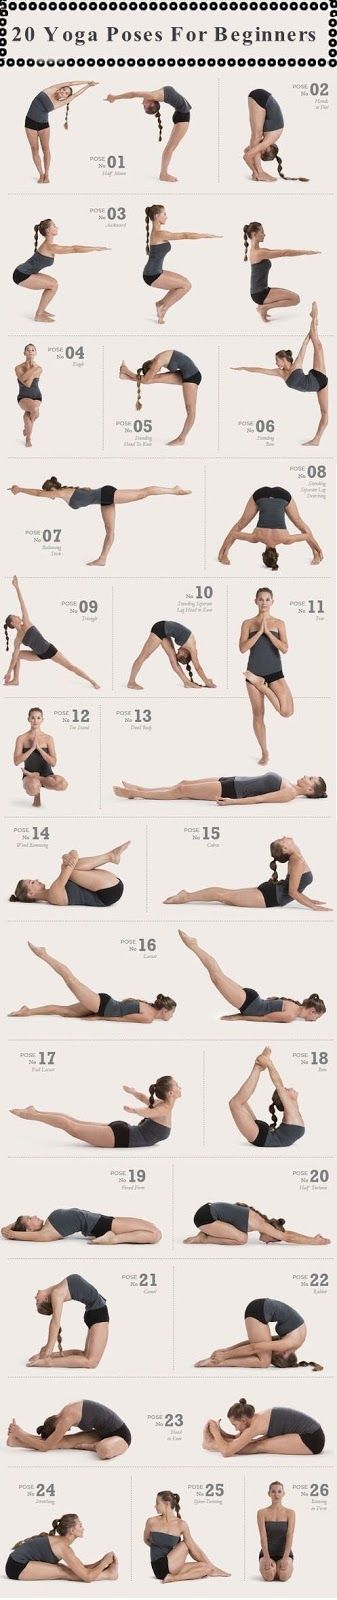 This makes me laugh. Half of these are not beginner poses.